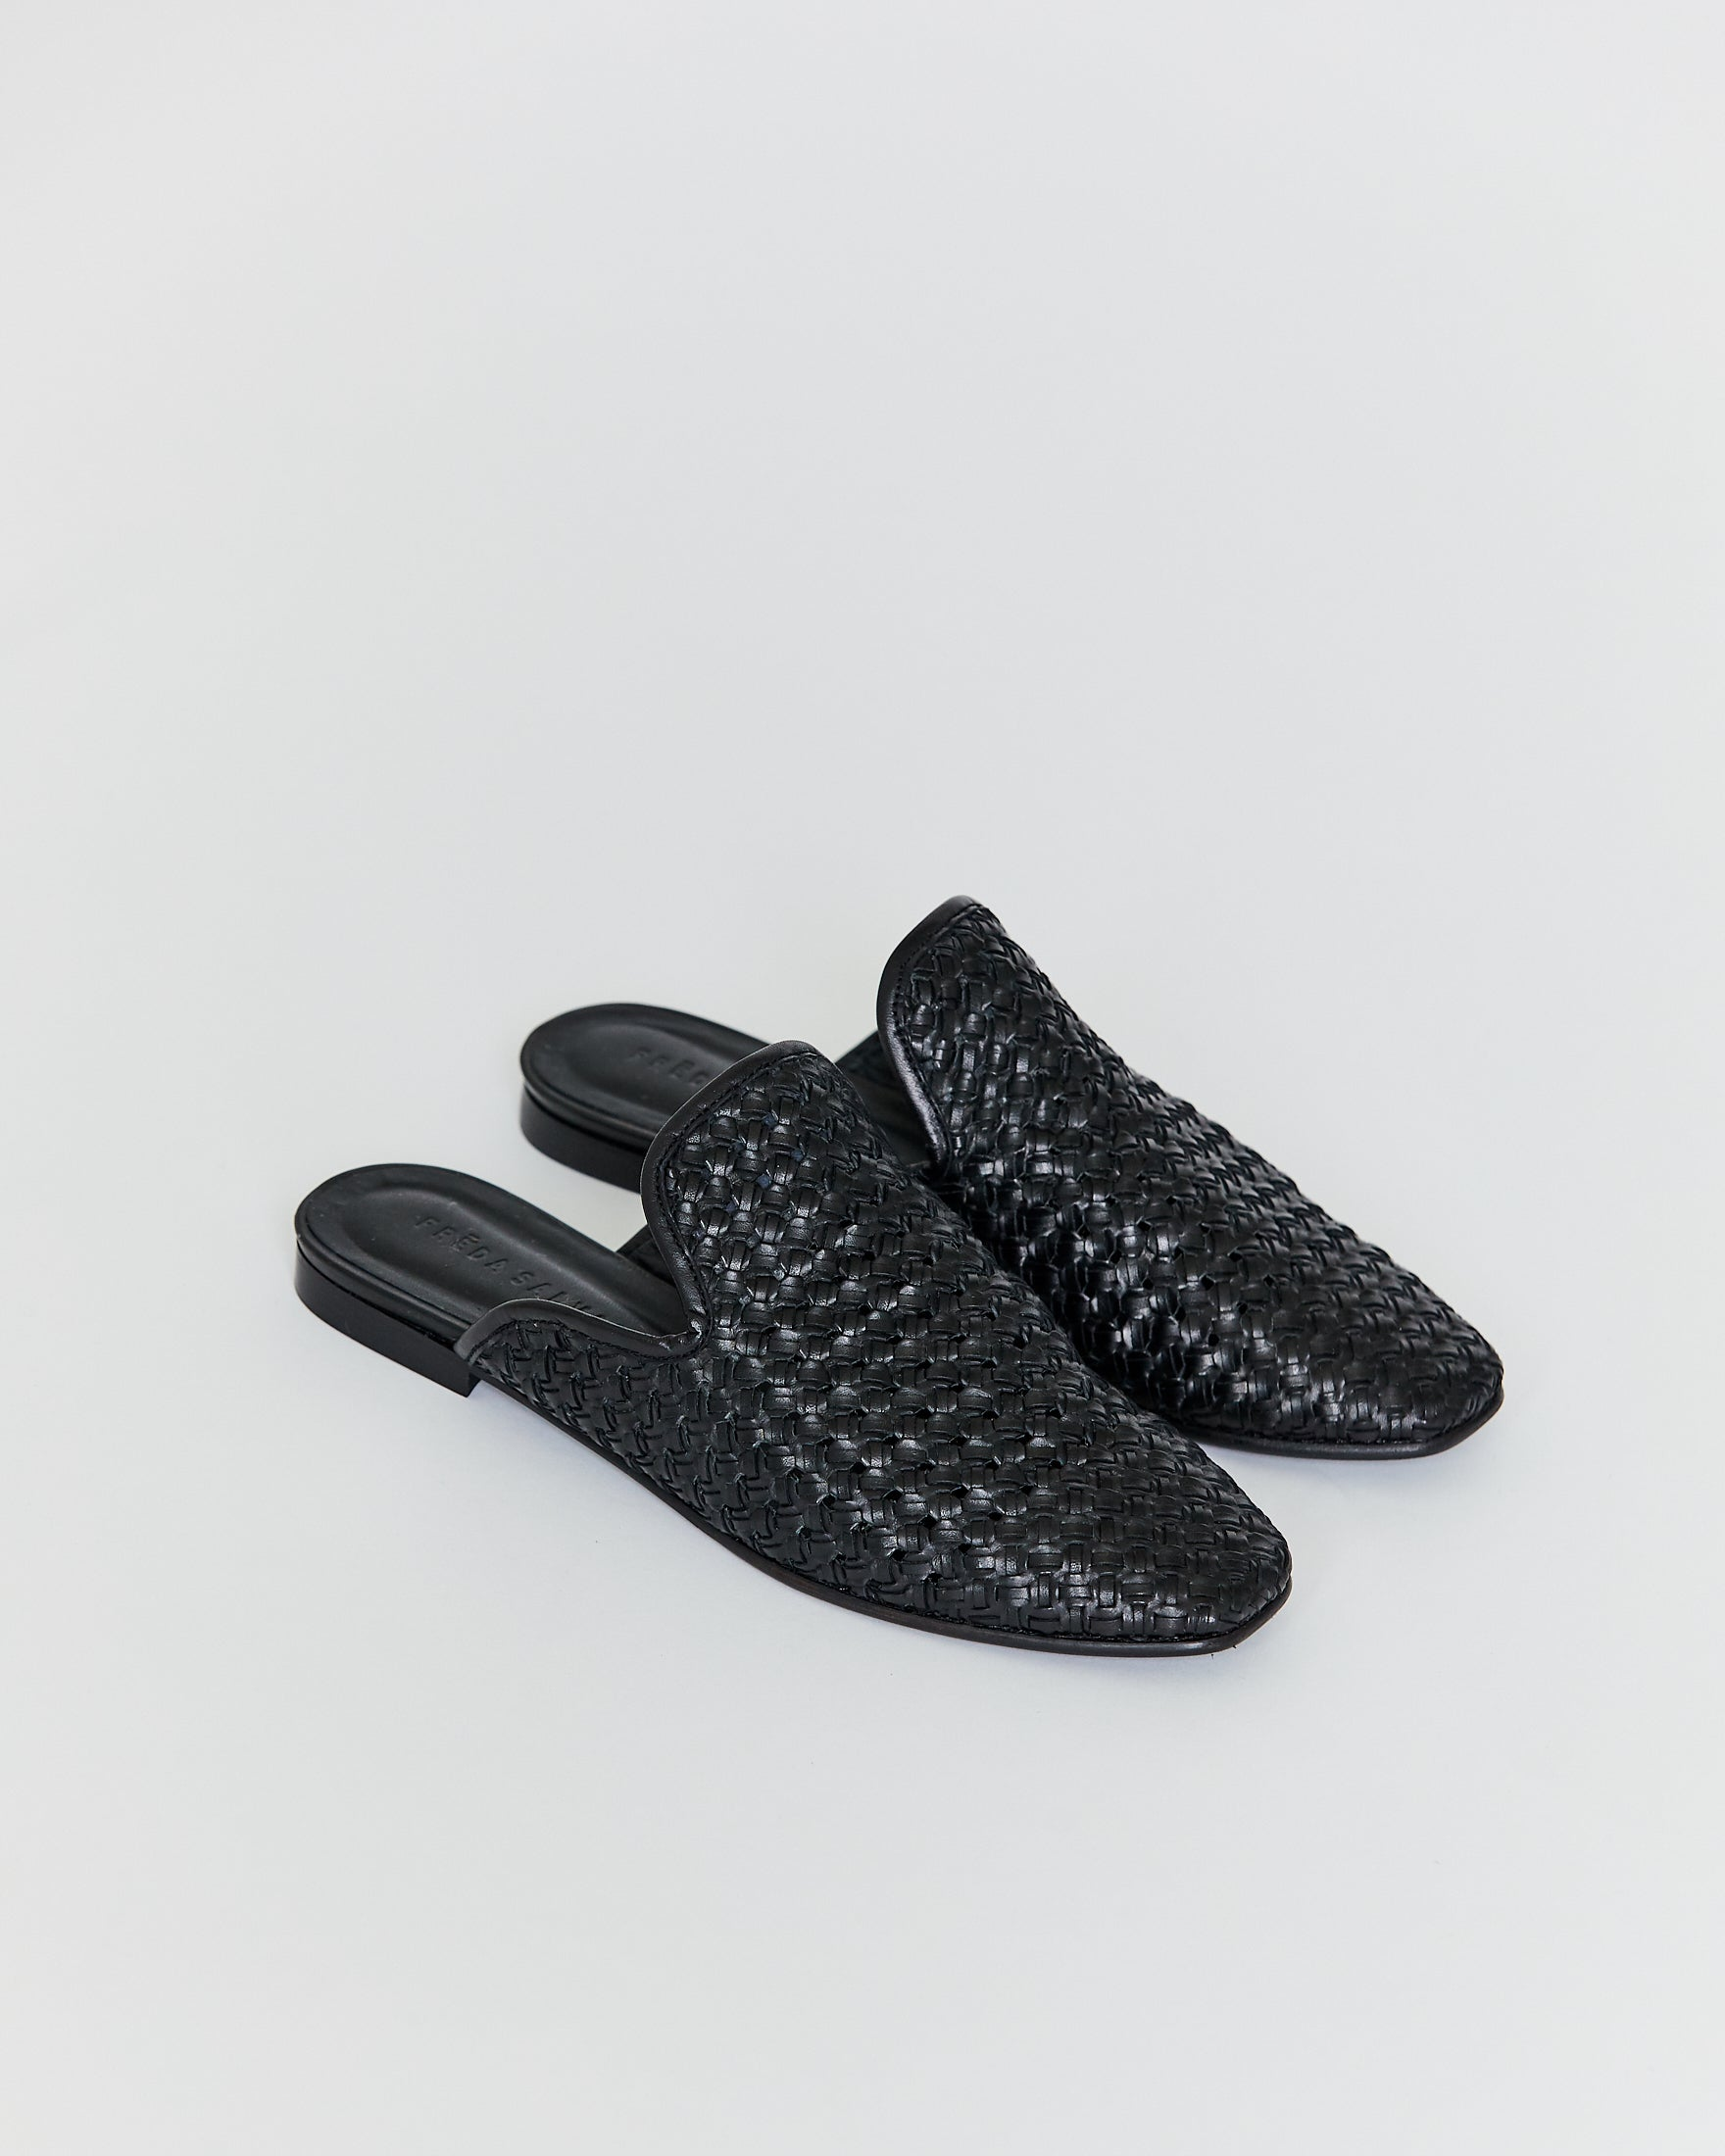 FREDA SALVADOR - MURPHEY SLIP ON - BLACK WOVEN